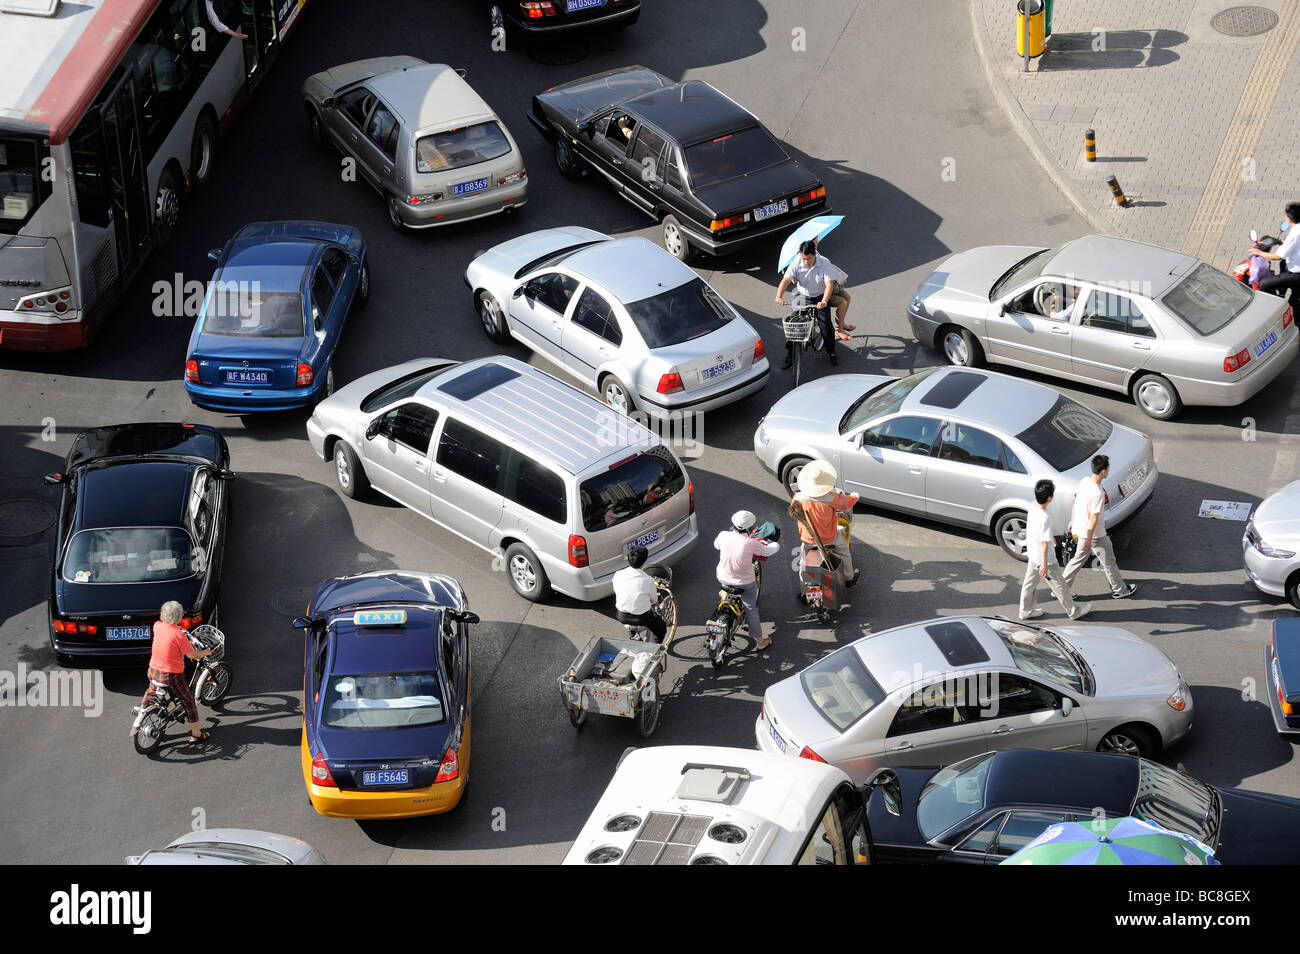 Traffic jam in Beijing, China. 2009 - Stock Image